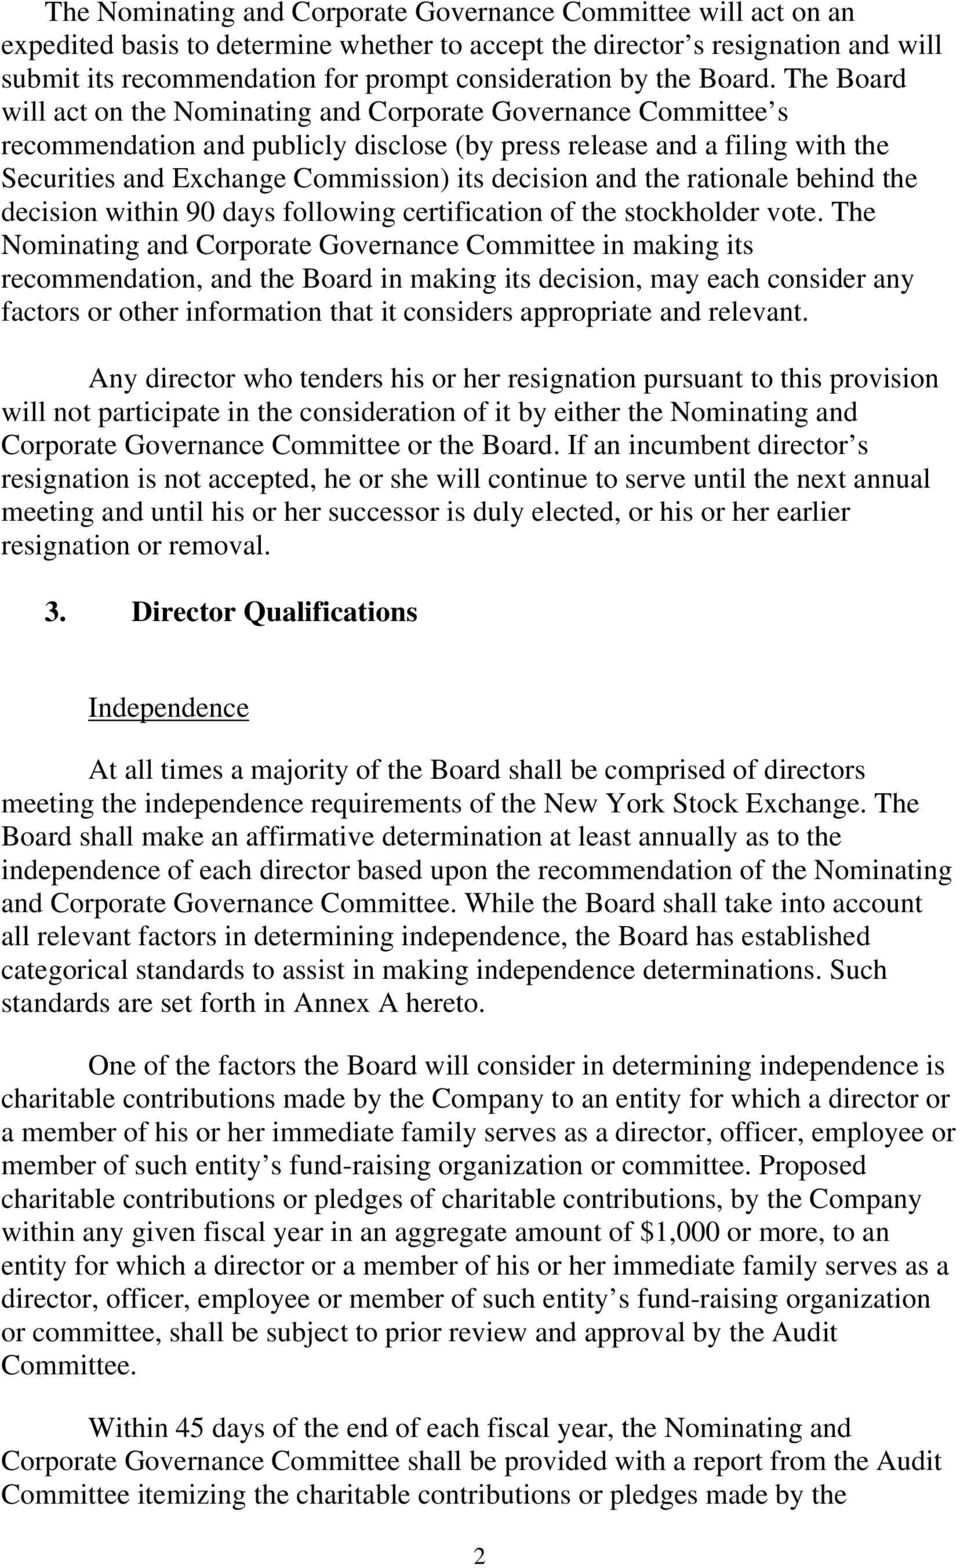 The Board will act on the Nominating and Corporate Governance Committee s recommendation and publicly disclose (by press release and a filing with the Securities and Exchange Commission) its decision